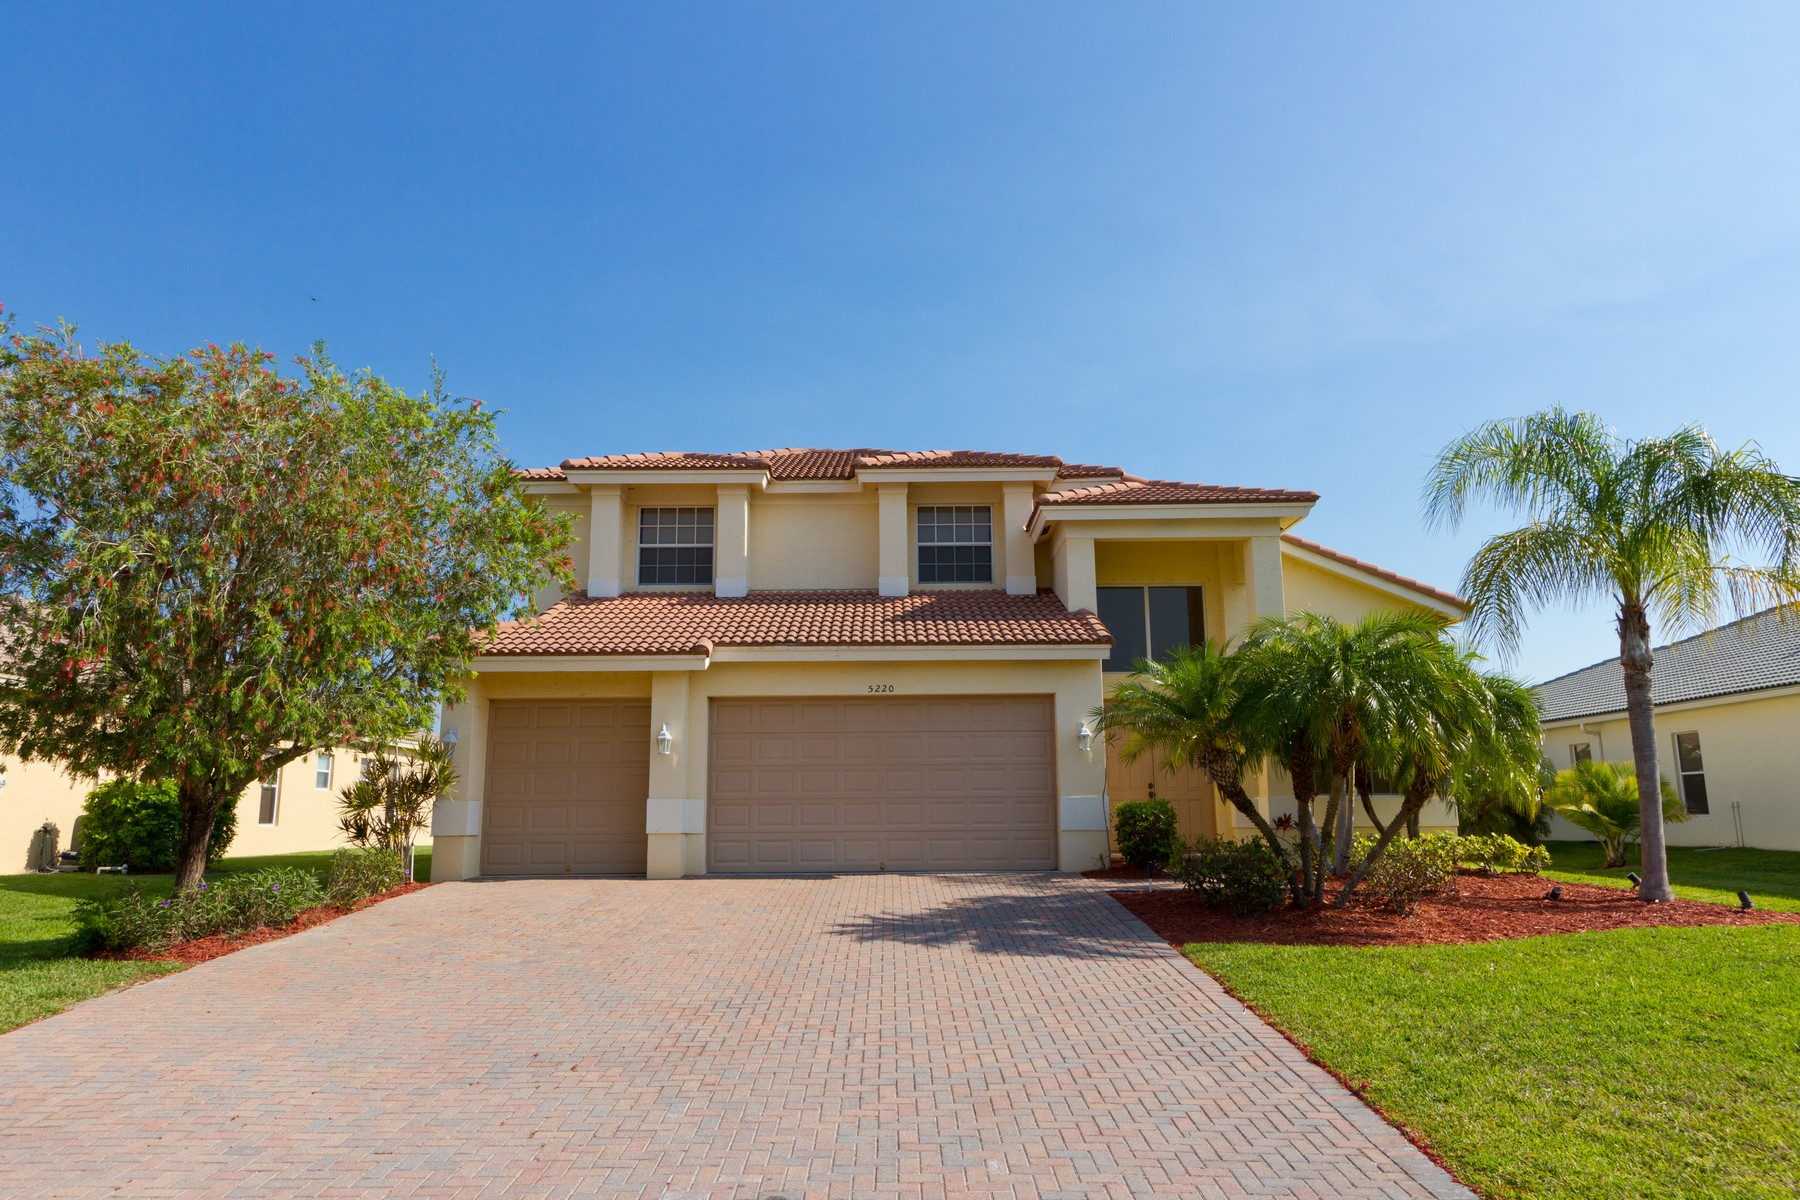 Single Family Home for Sale at Inviting Lake Front Home 5220 Topaz Ln SW Vero Beach, Florida 32968 United States